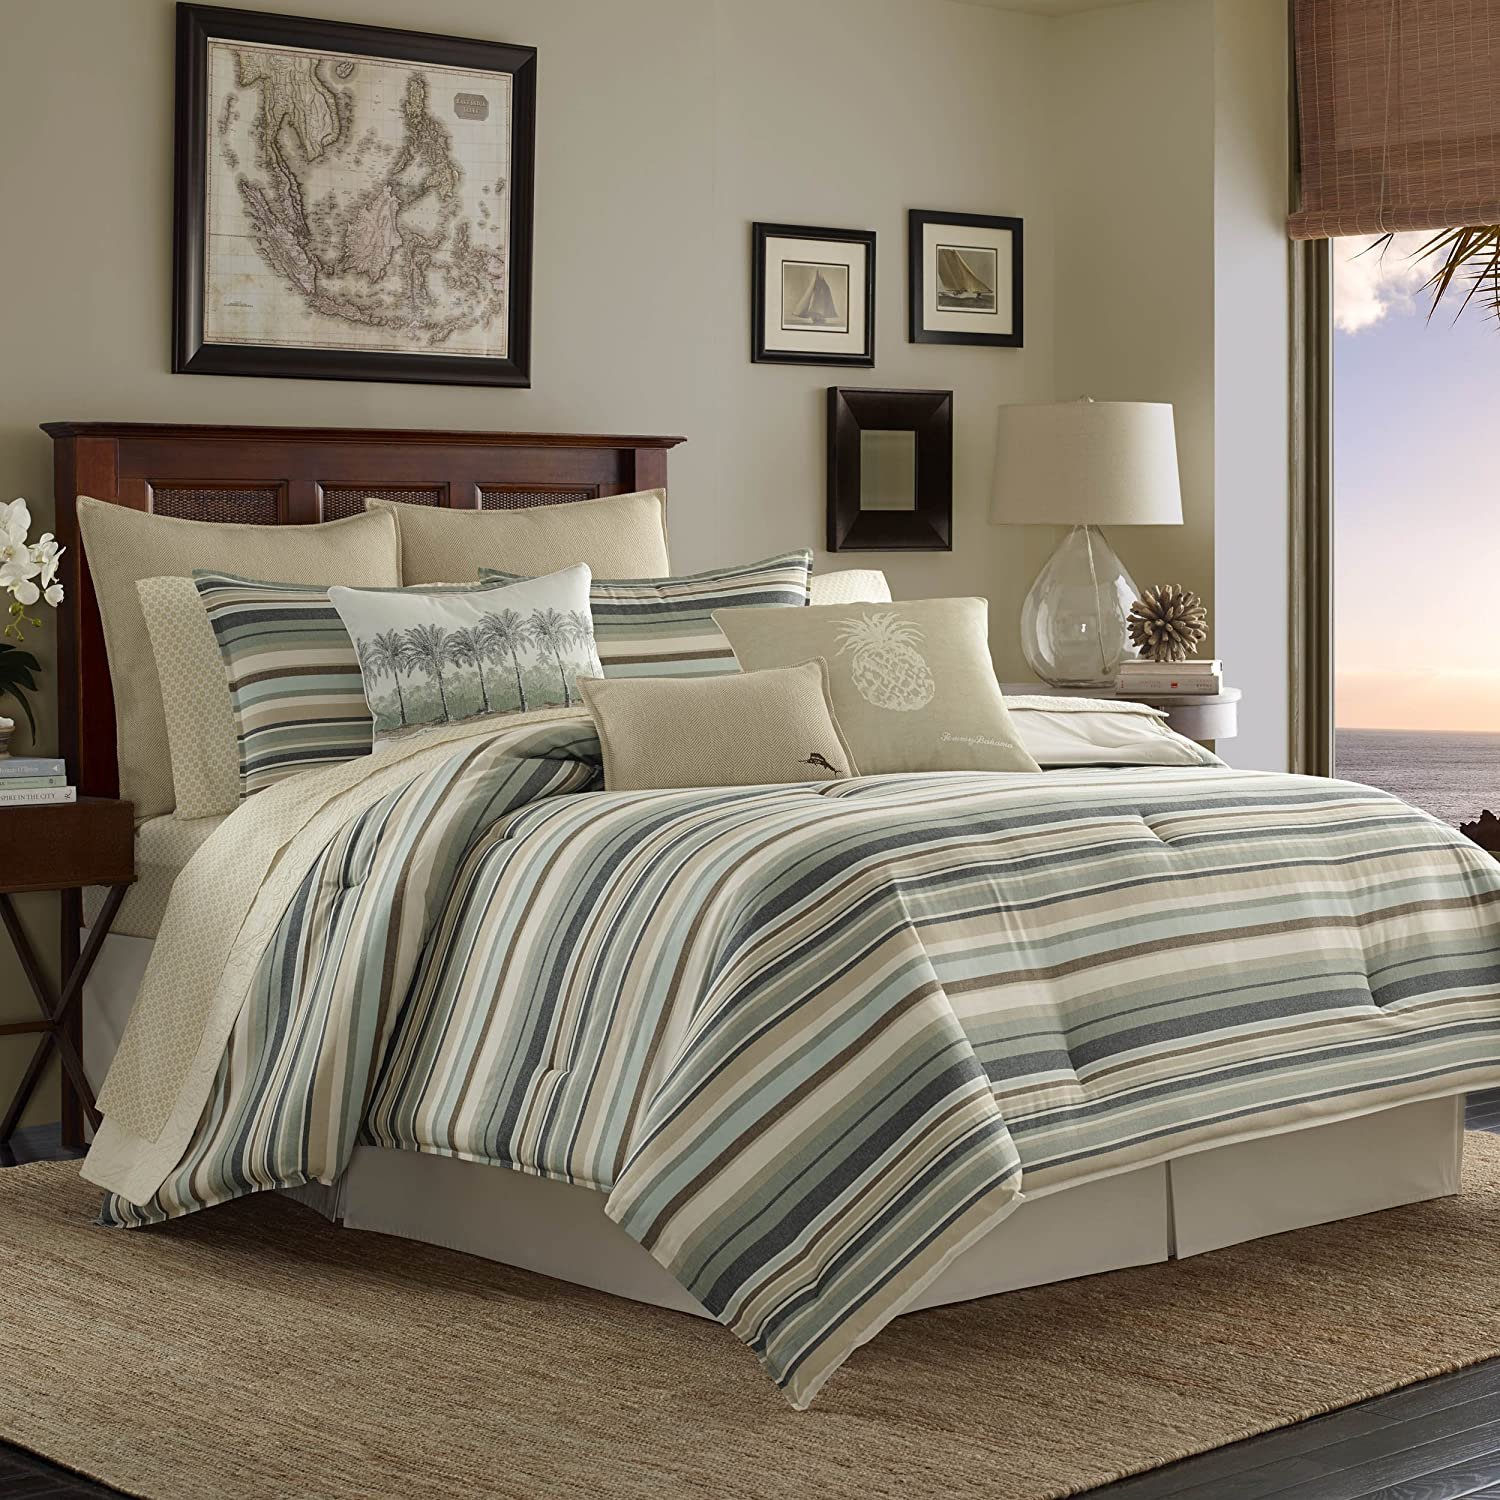 Tommy Bahama Canvas Stripe Comforter Set, Queen, Green Revman International 220203